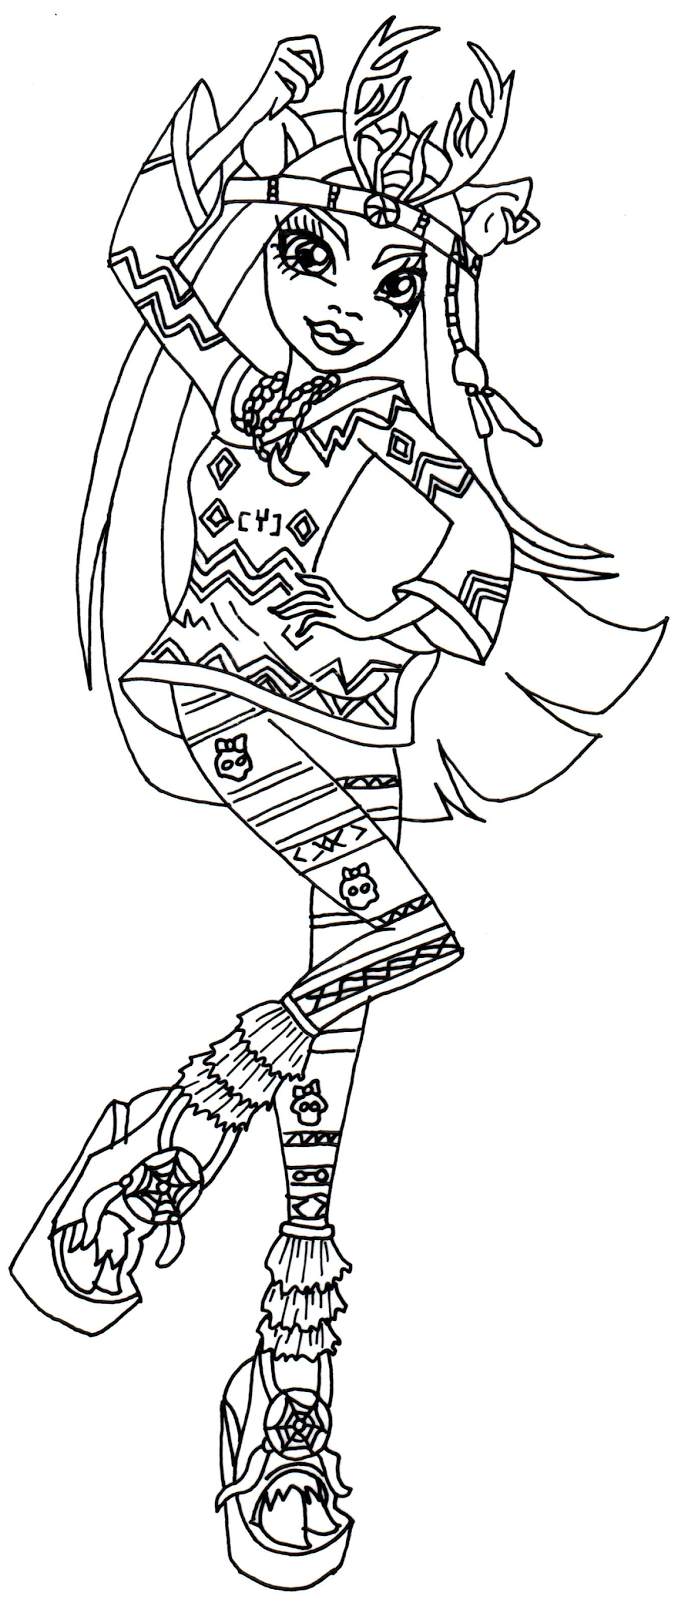 Free printable monster high coloring pages isi dawndancer for Monster high free coloring pages